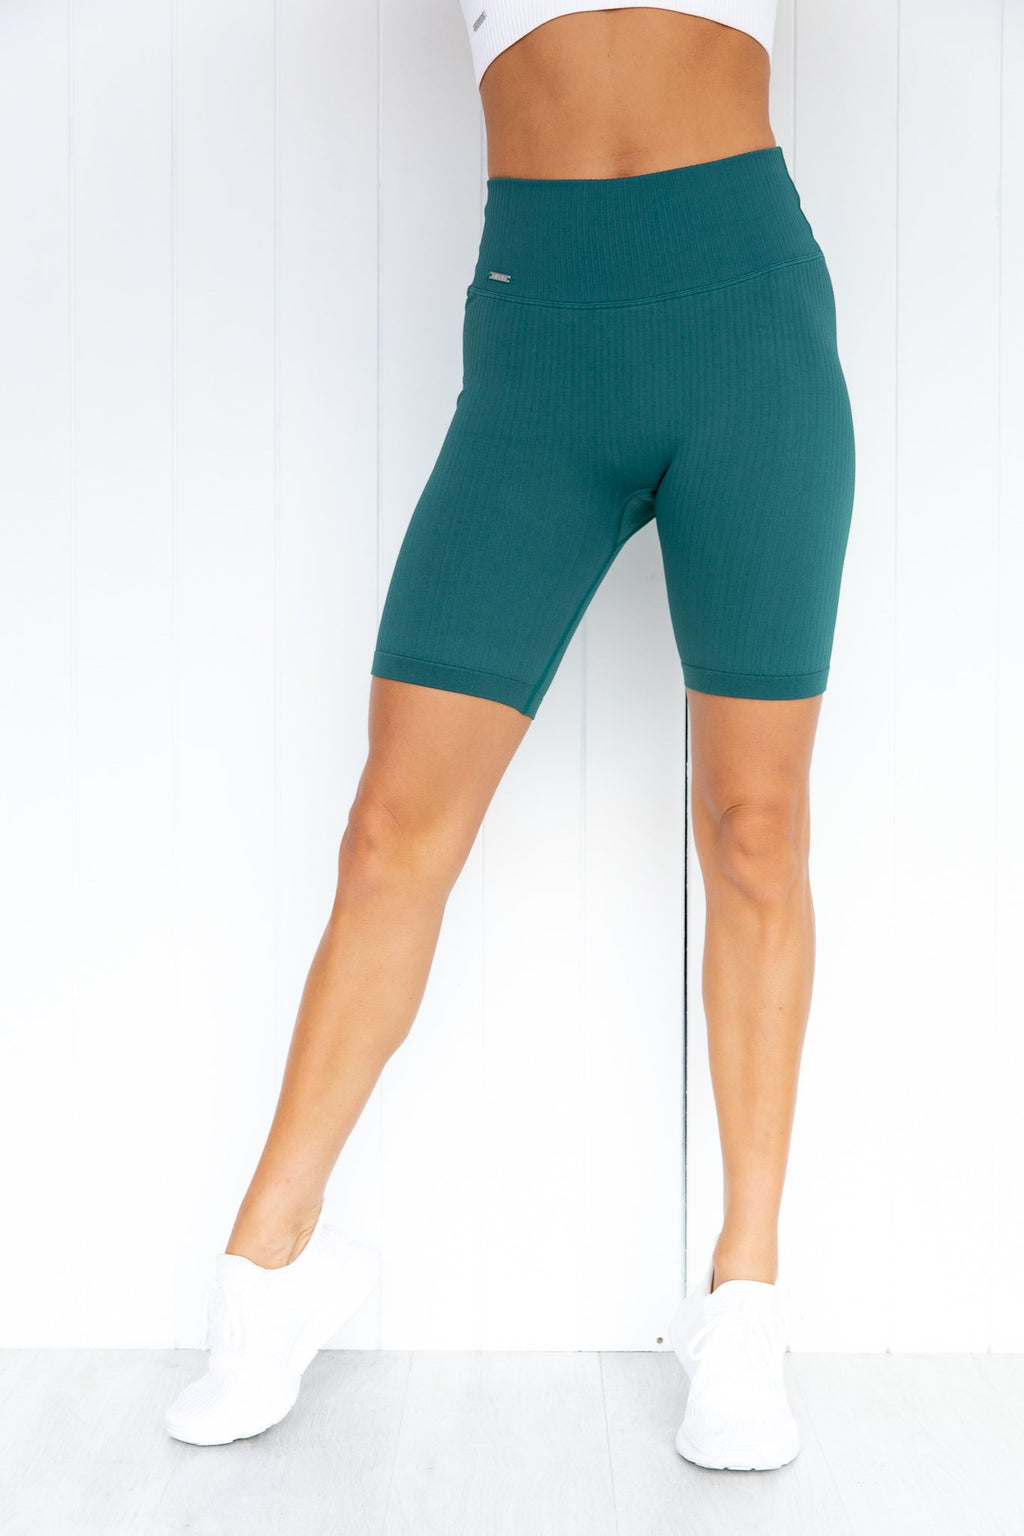 Hydro Ribbed Seamless Bike Shorts